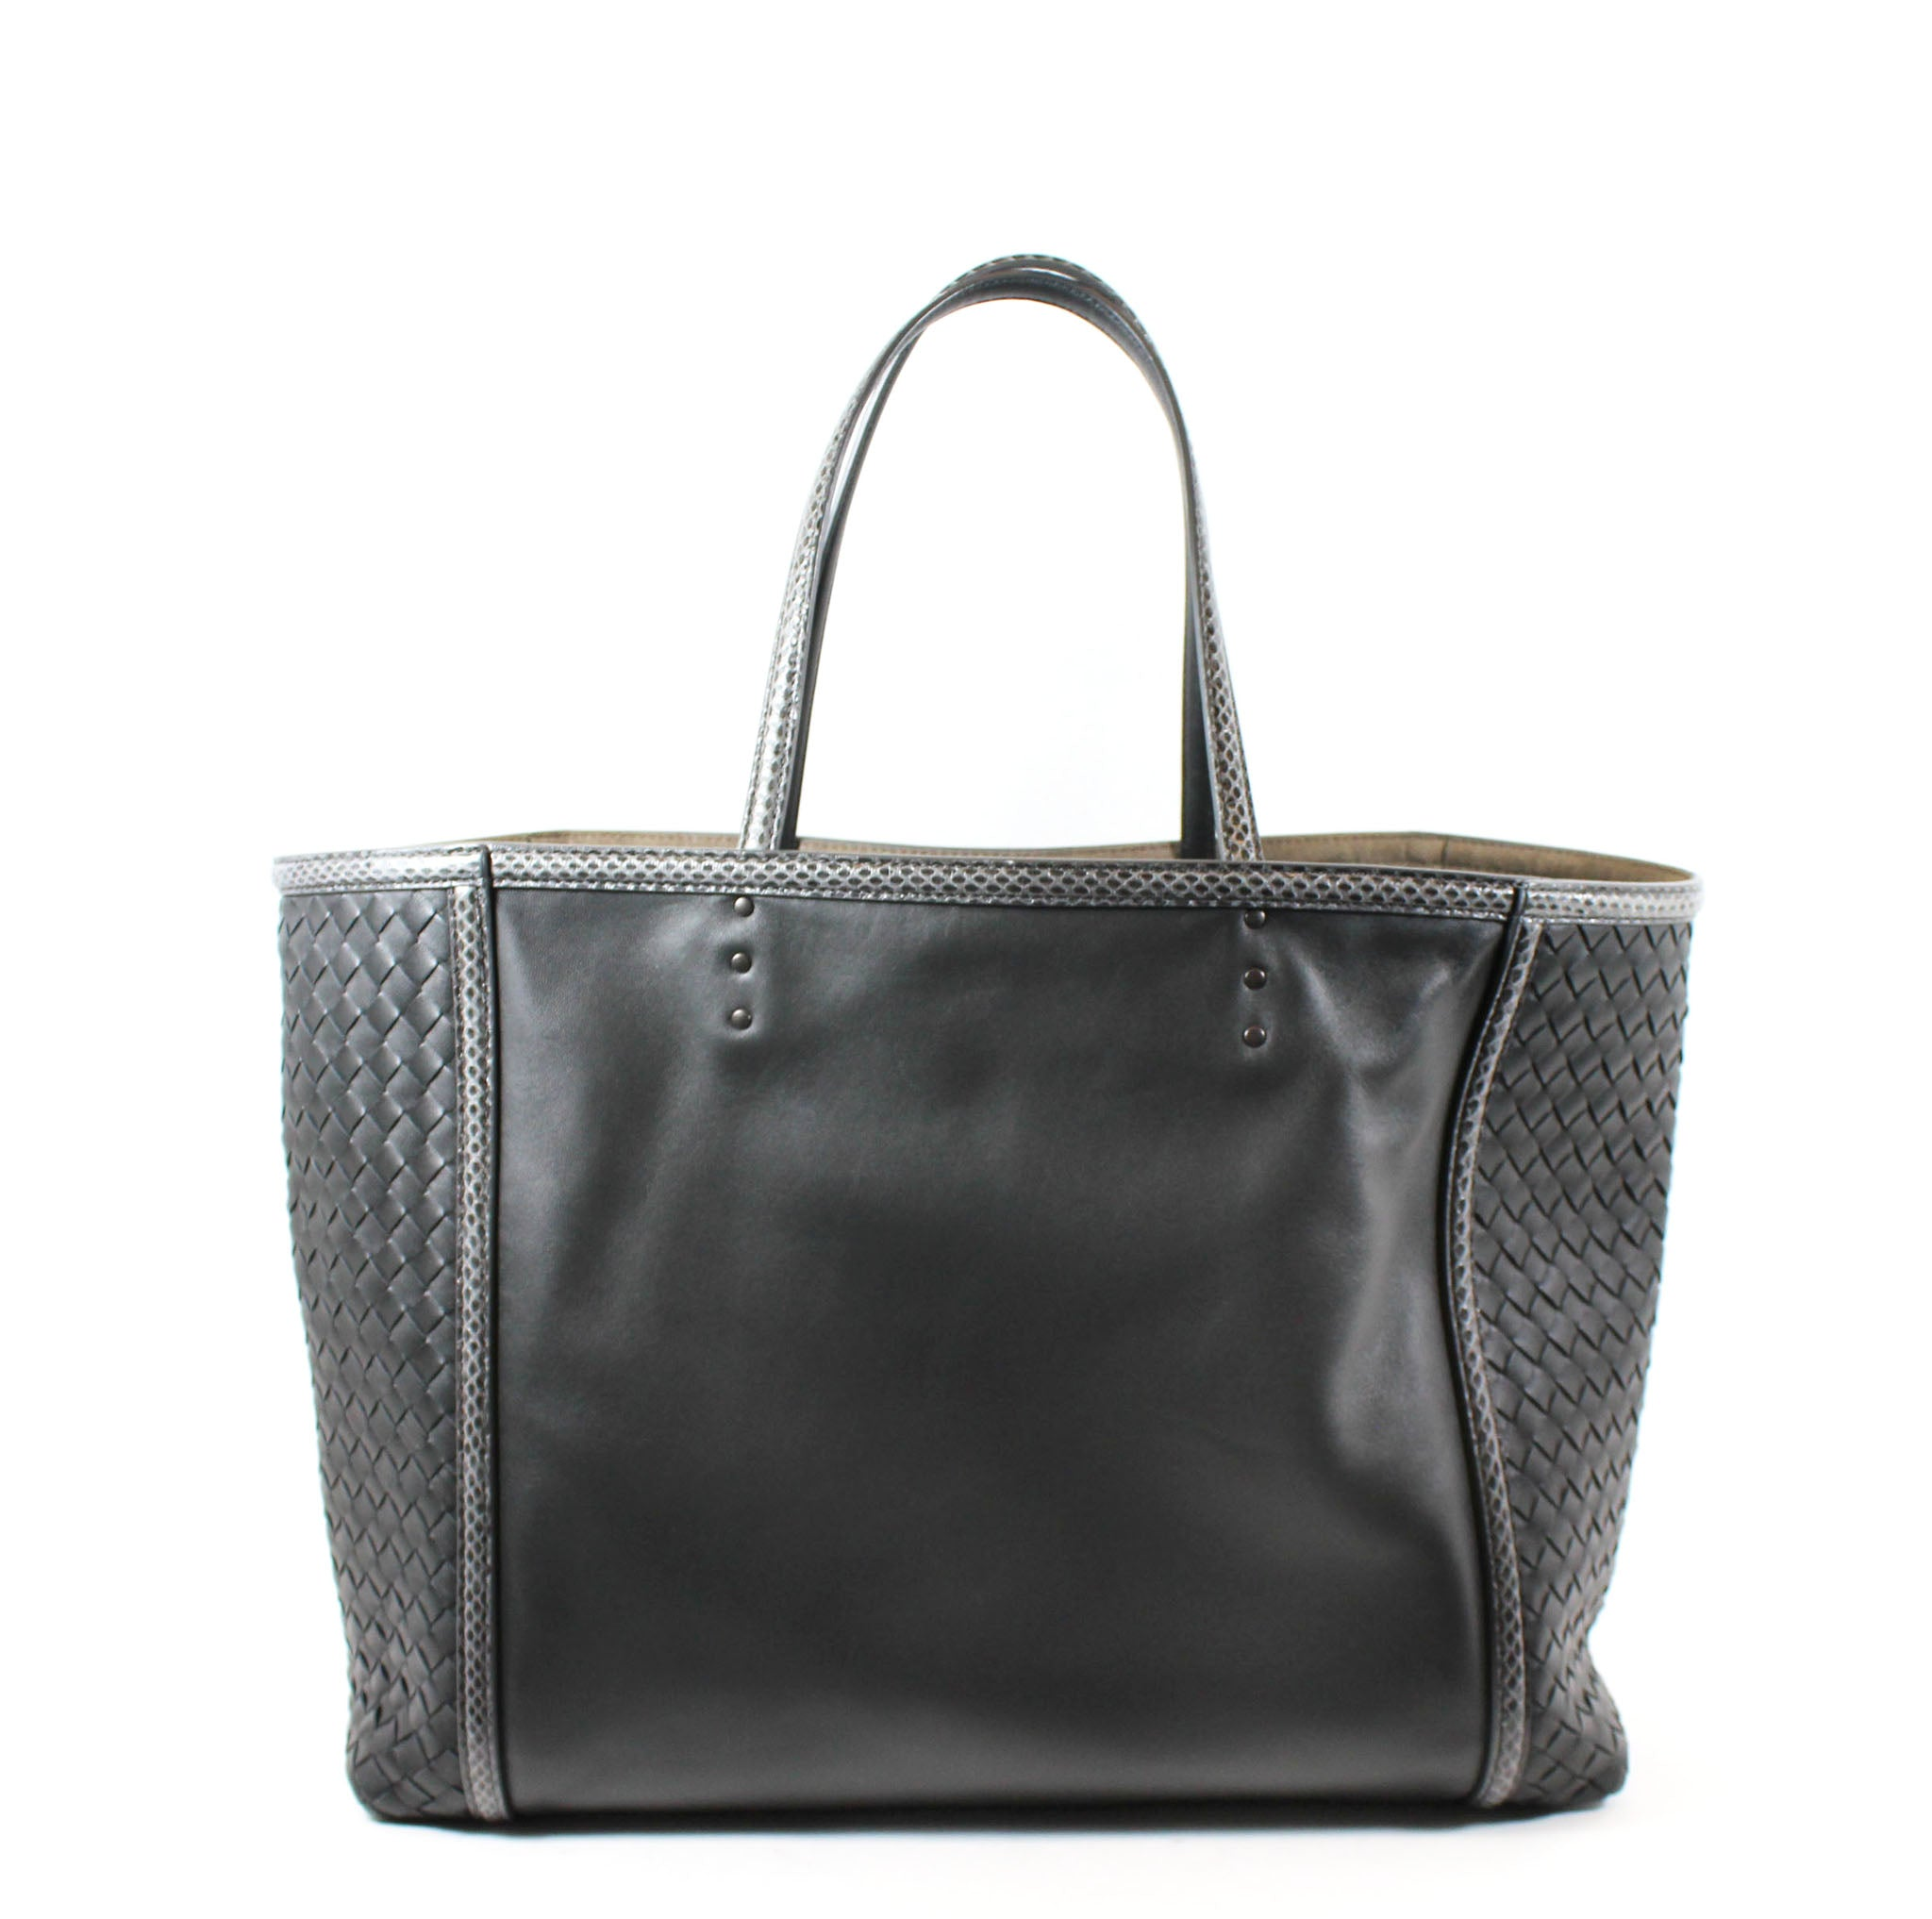 Bottega Veneta Medium Charcoal Leather Snakeskin Tote – Encore ... 31237f8de4